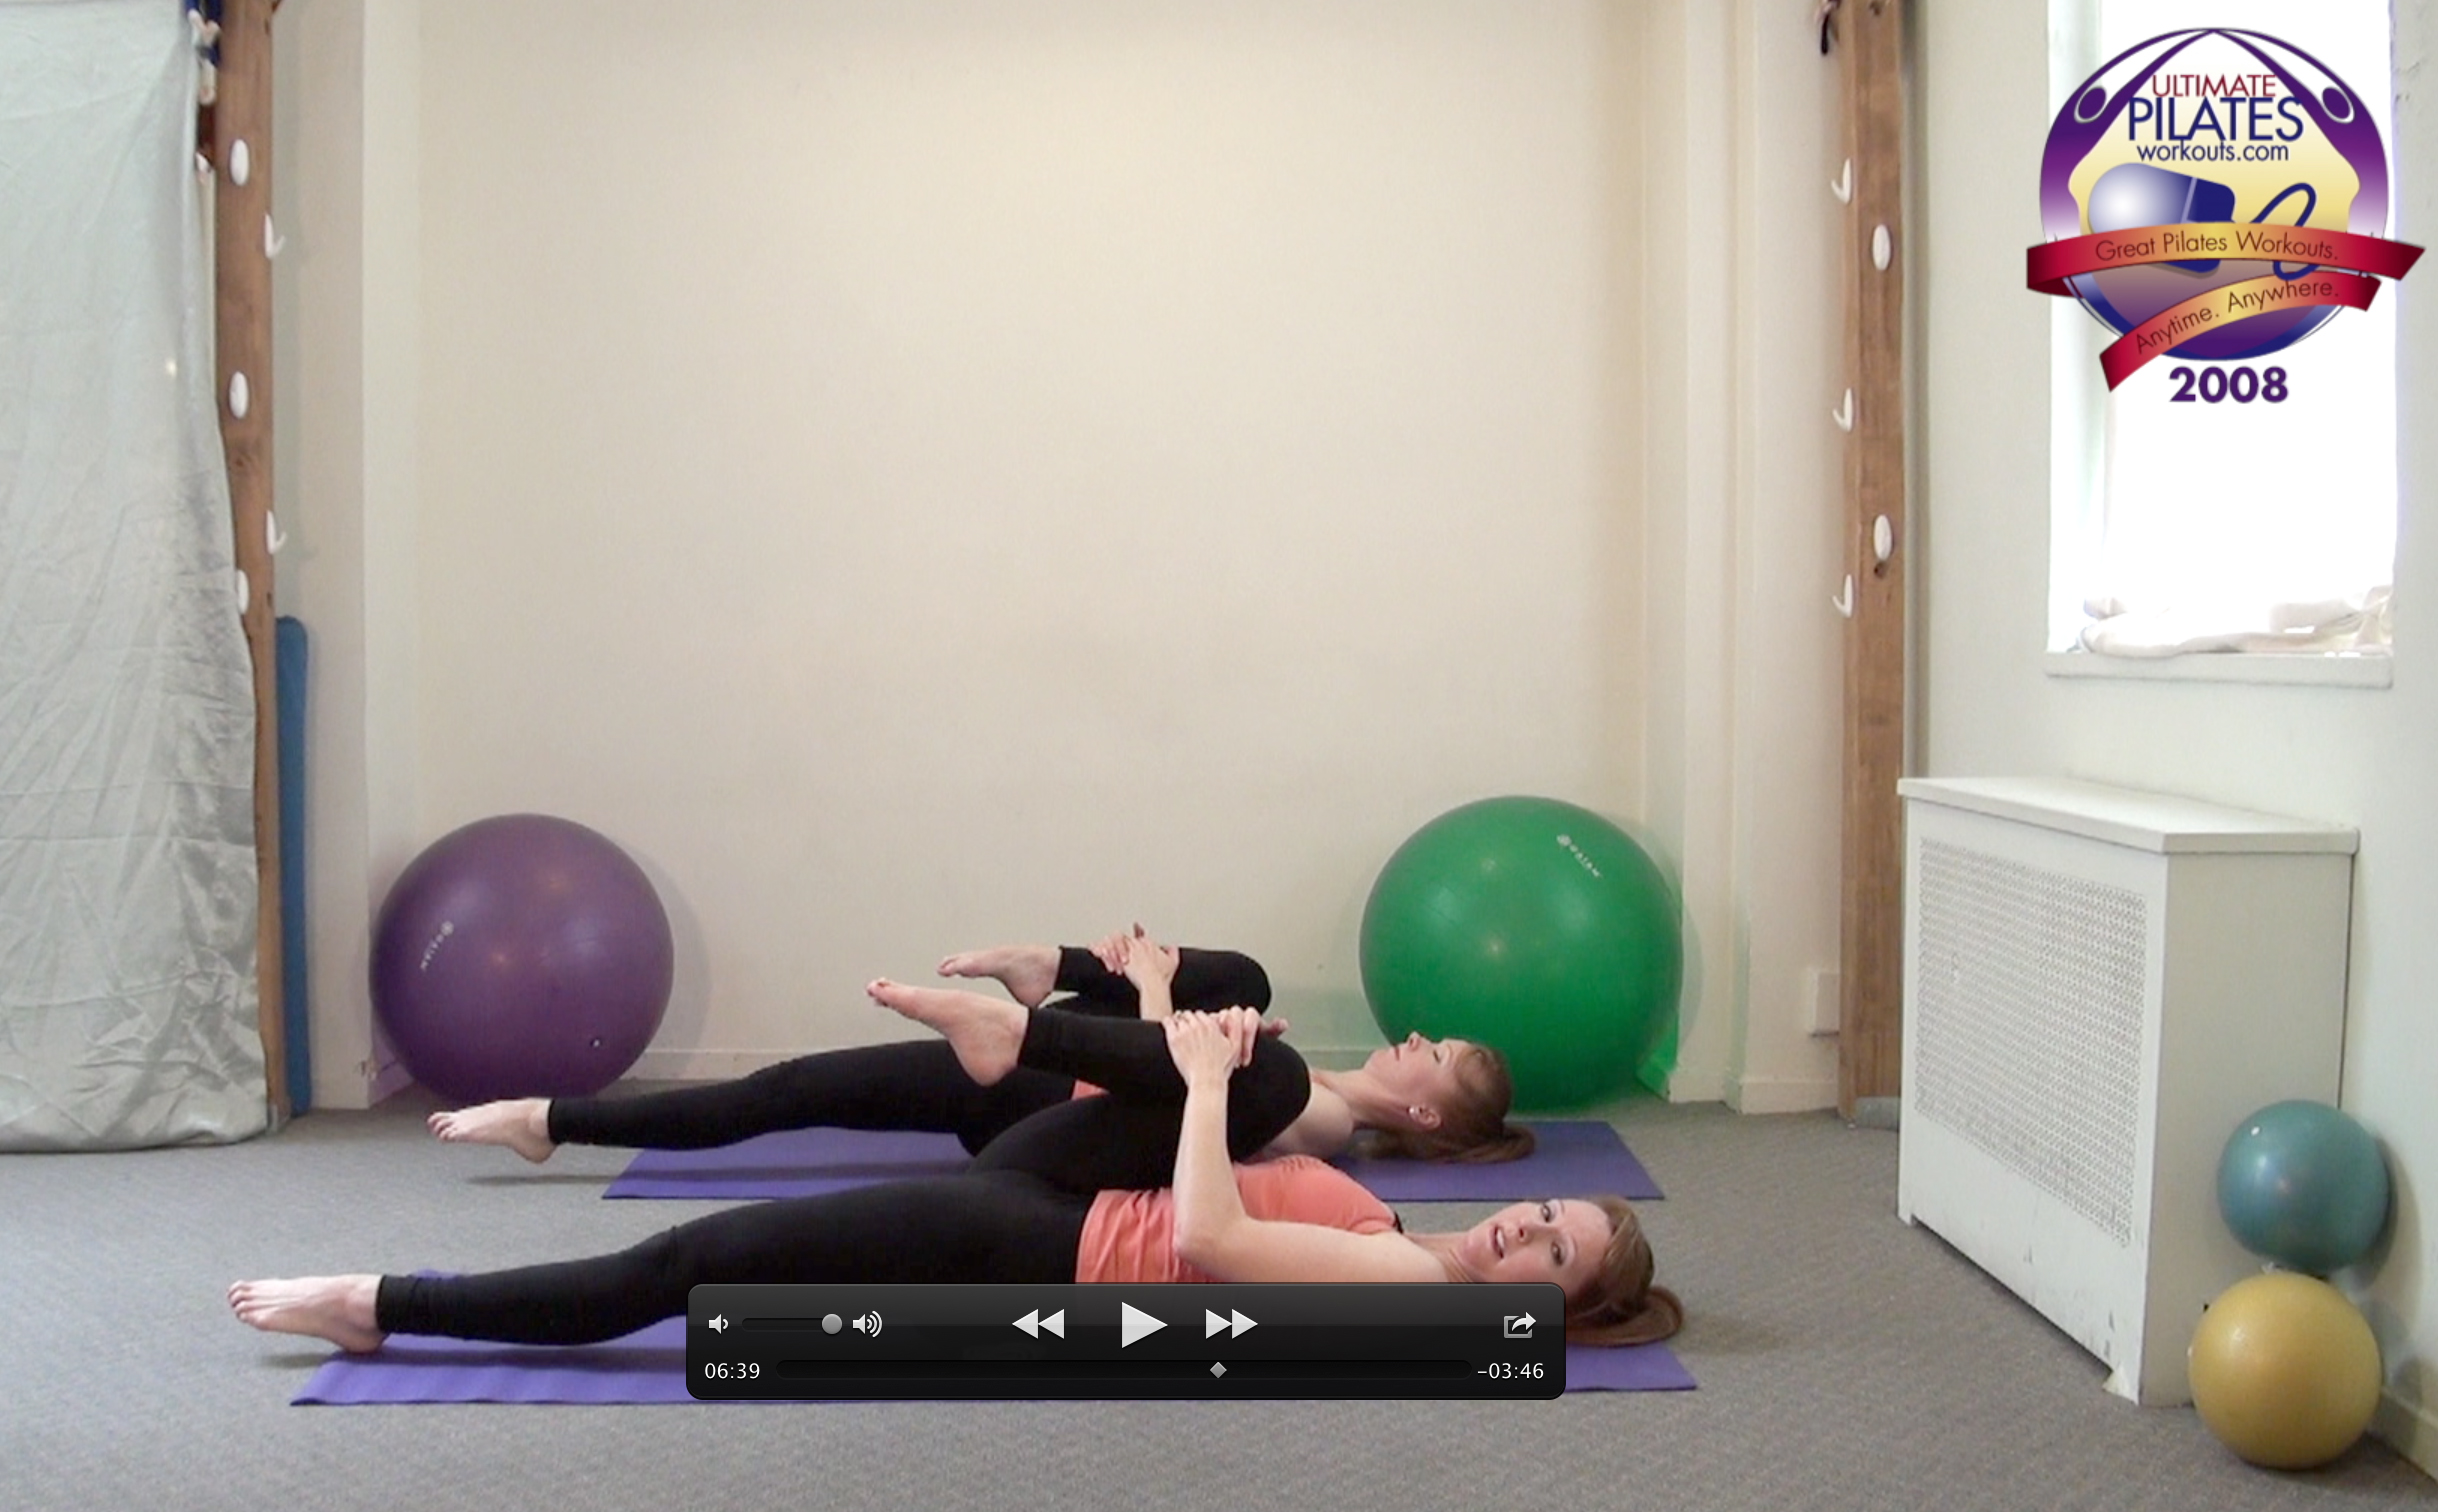 Morning Low Back Care Workout 2